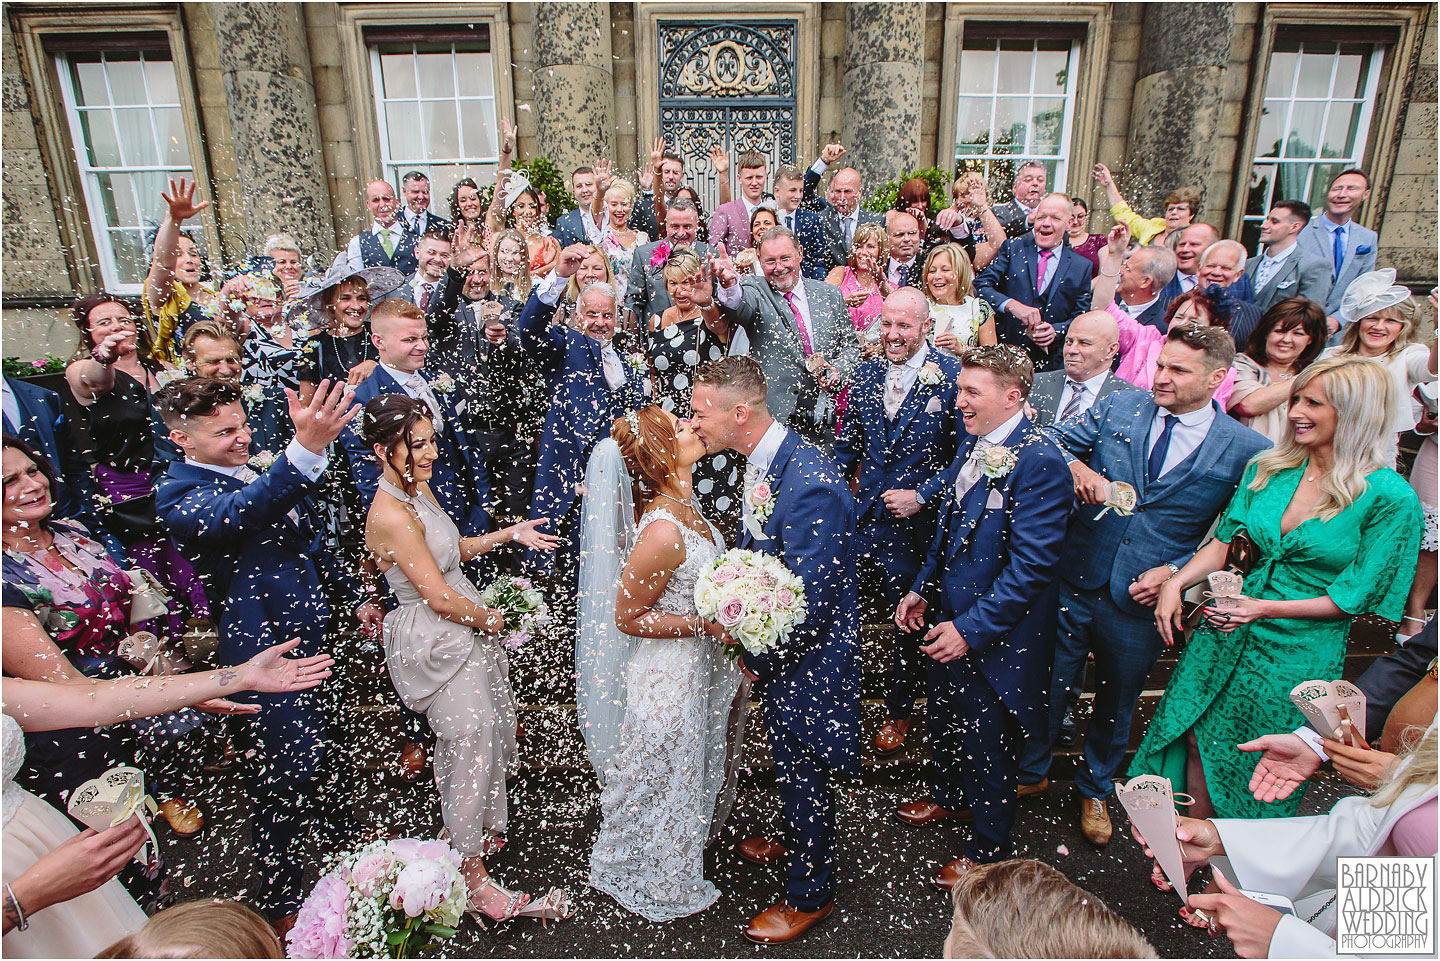 Denton Hall Wedding Confetti Photograph, Ilkley Wedding Photos, Amazing Yorkshire Wedding Photos, Best Yorkshire Wedding Photos 2018